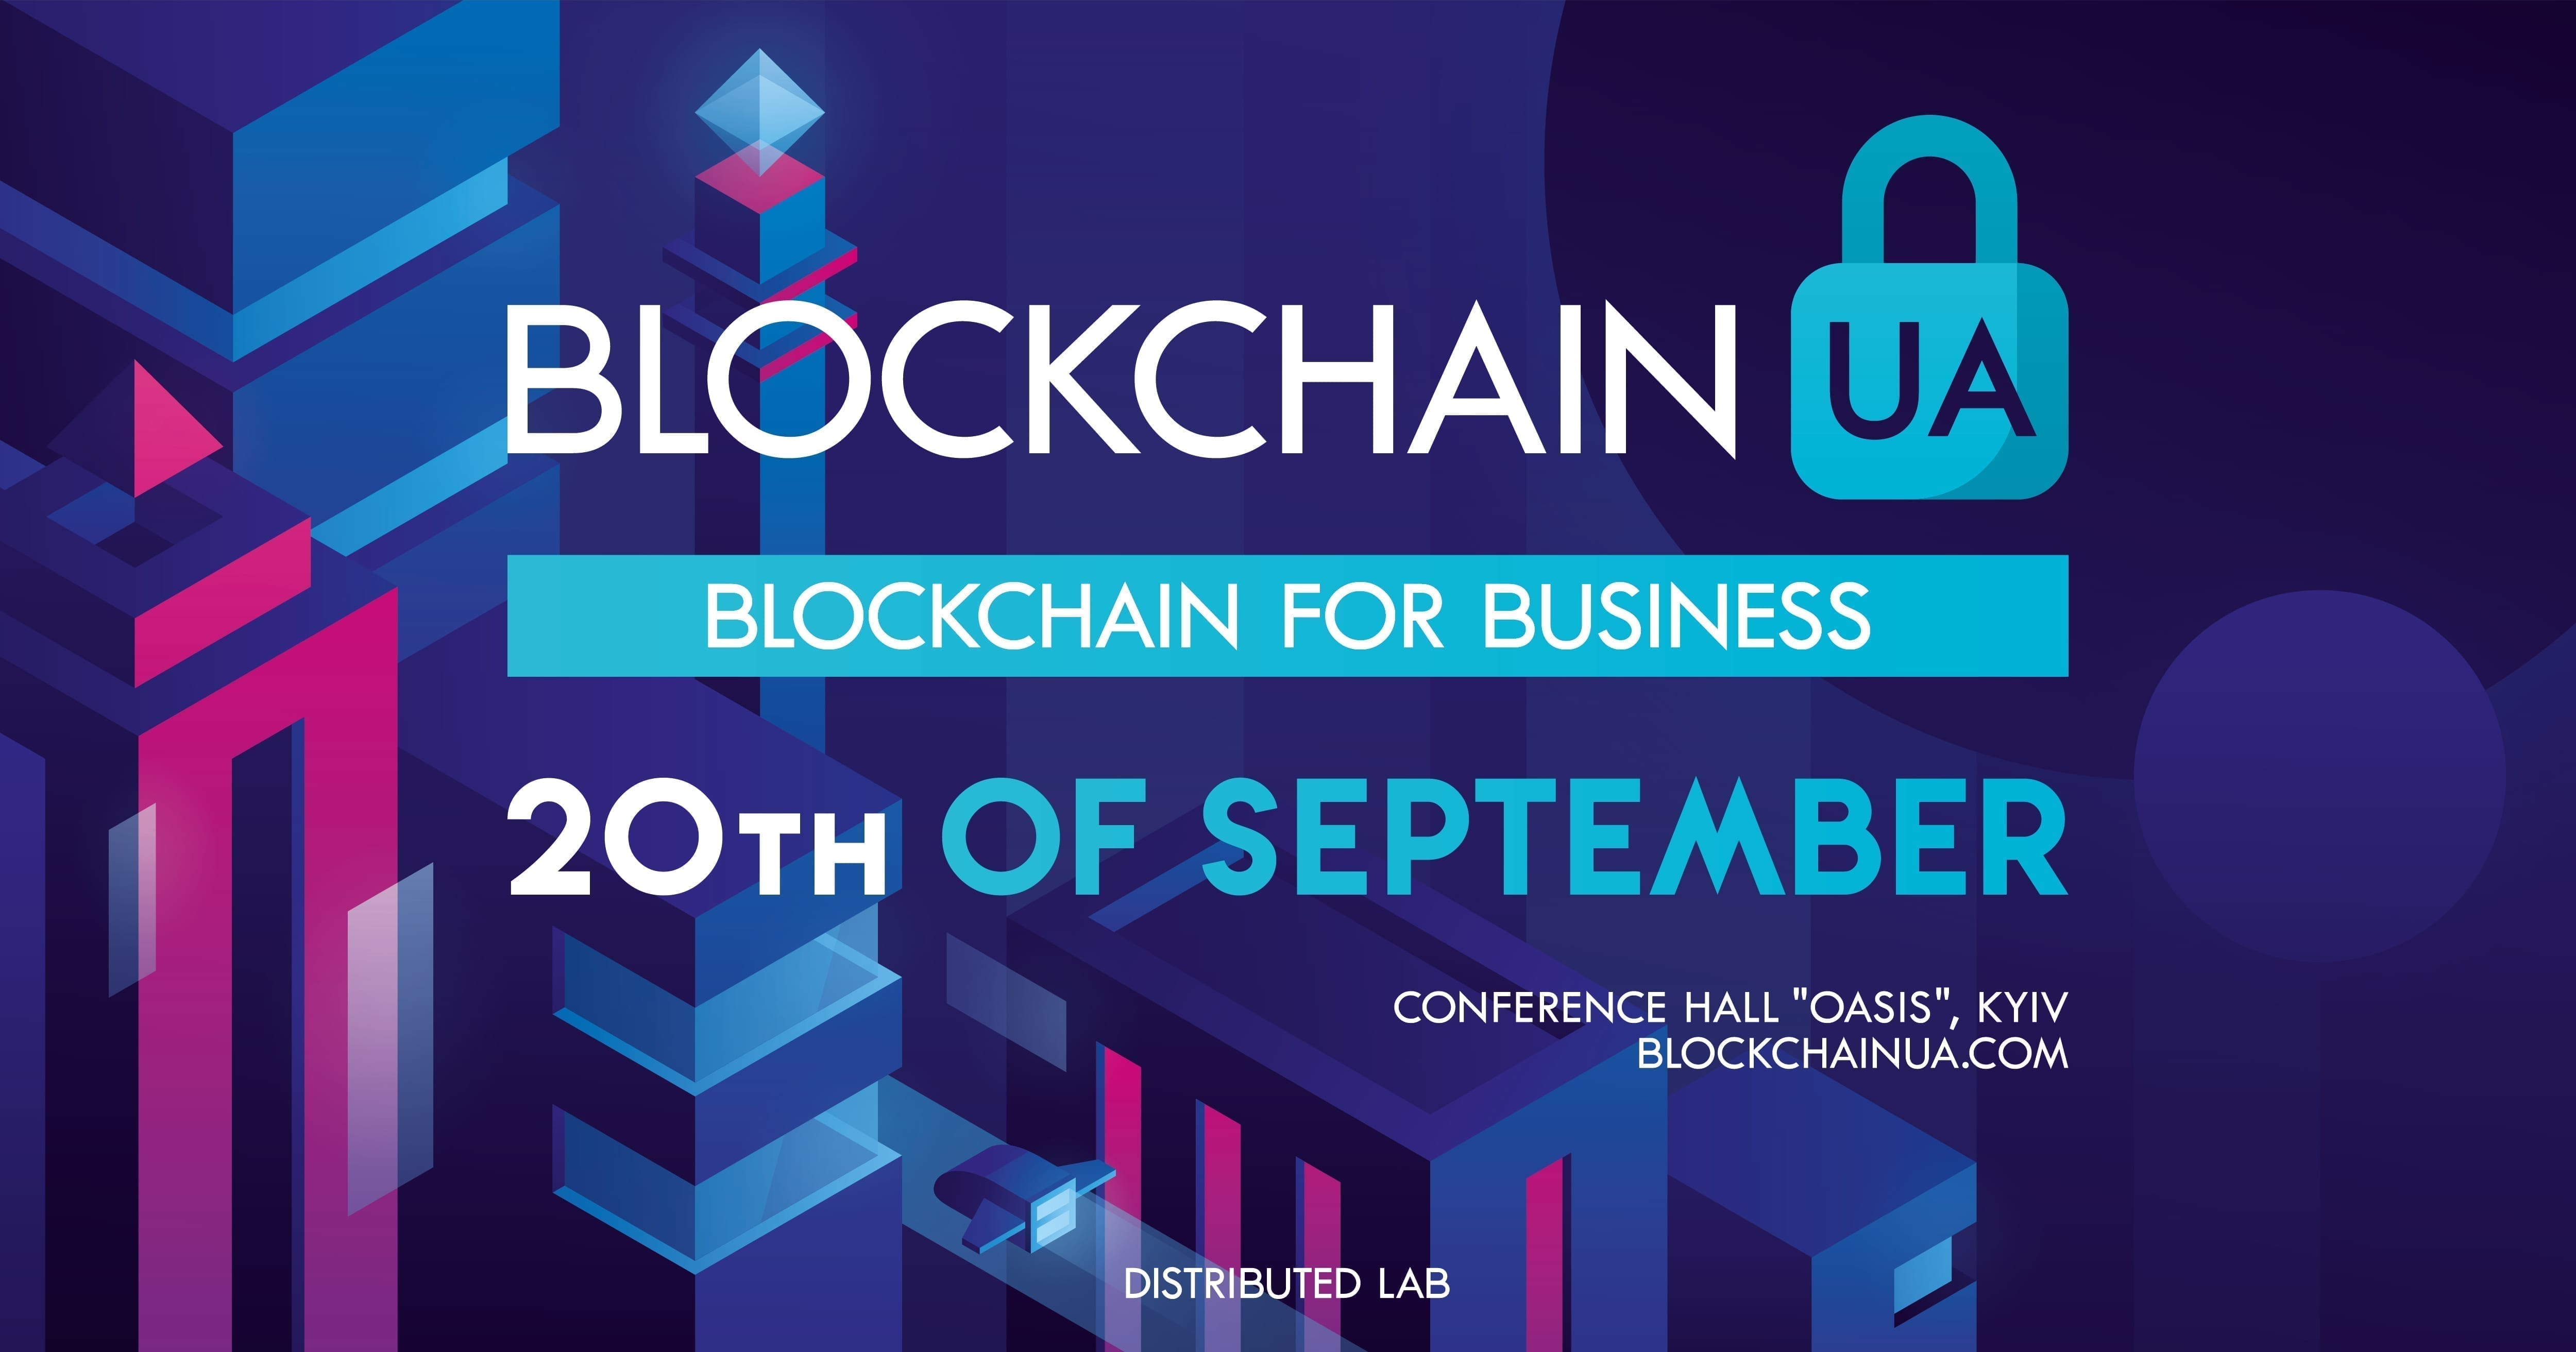 Blockchain UA, Kyiv, event, conference, summit, bitcoin, blockchain, crypto, cryptocurrency, september, 2019